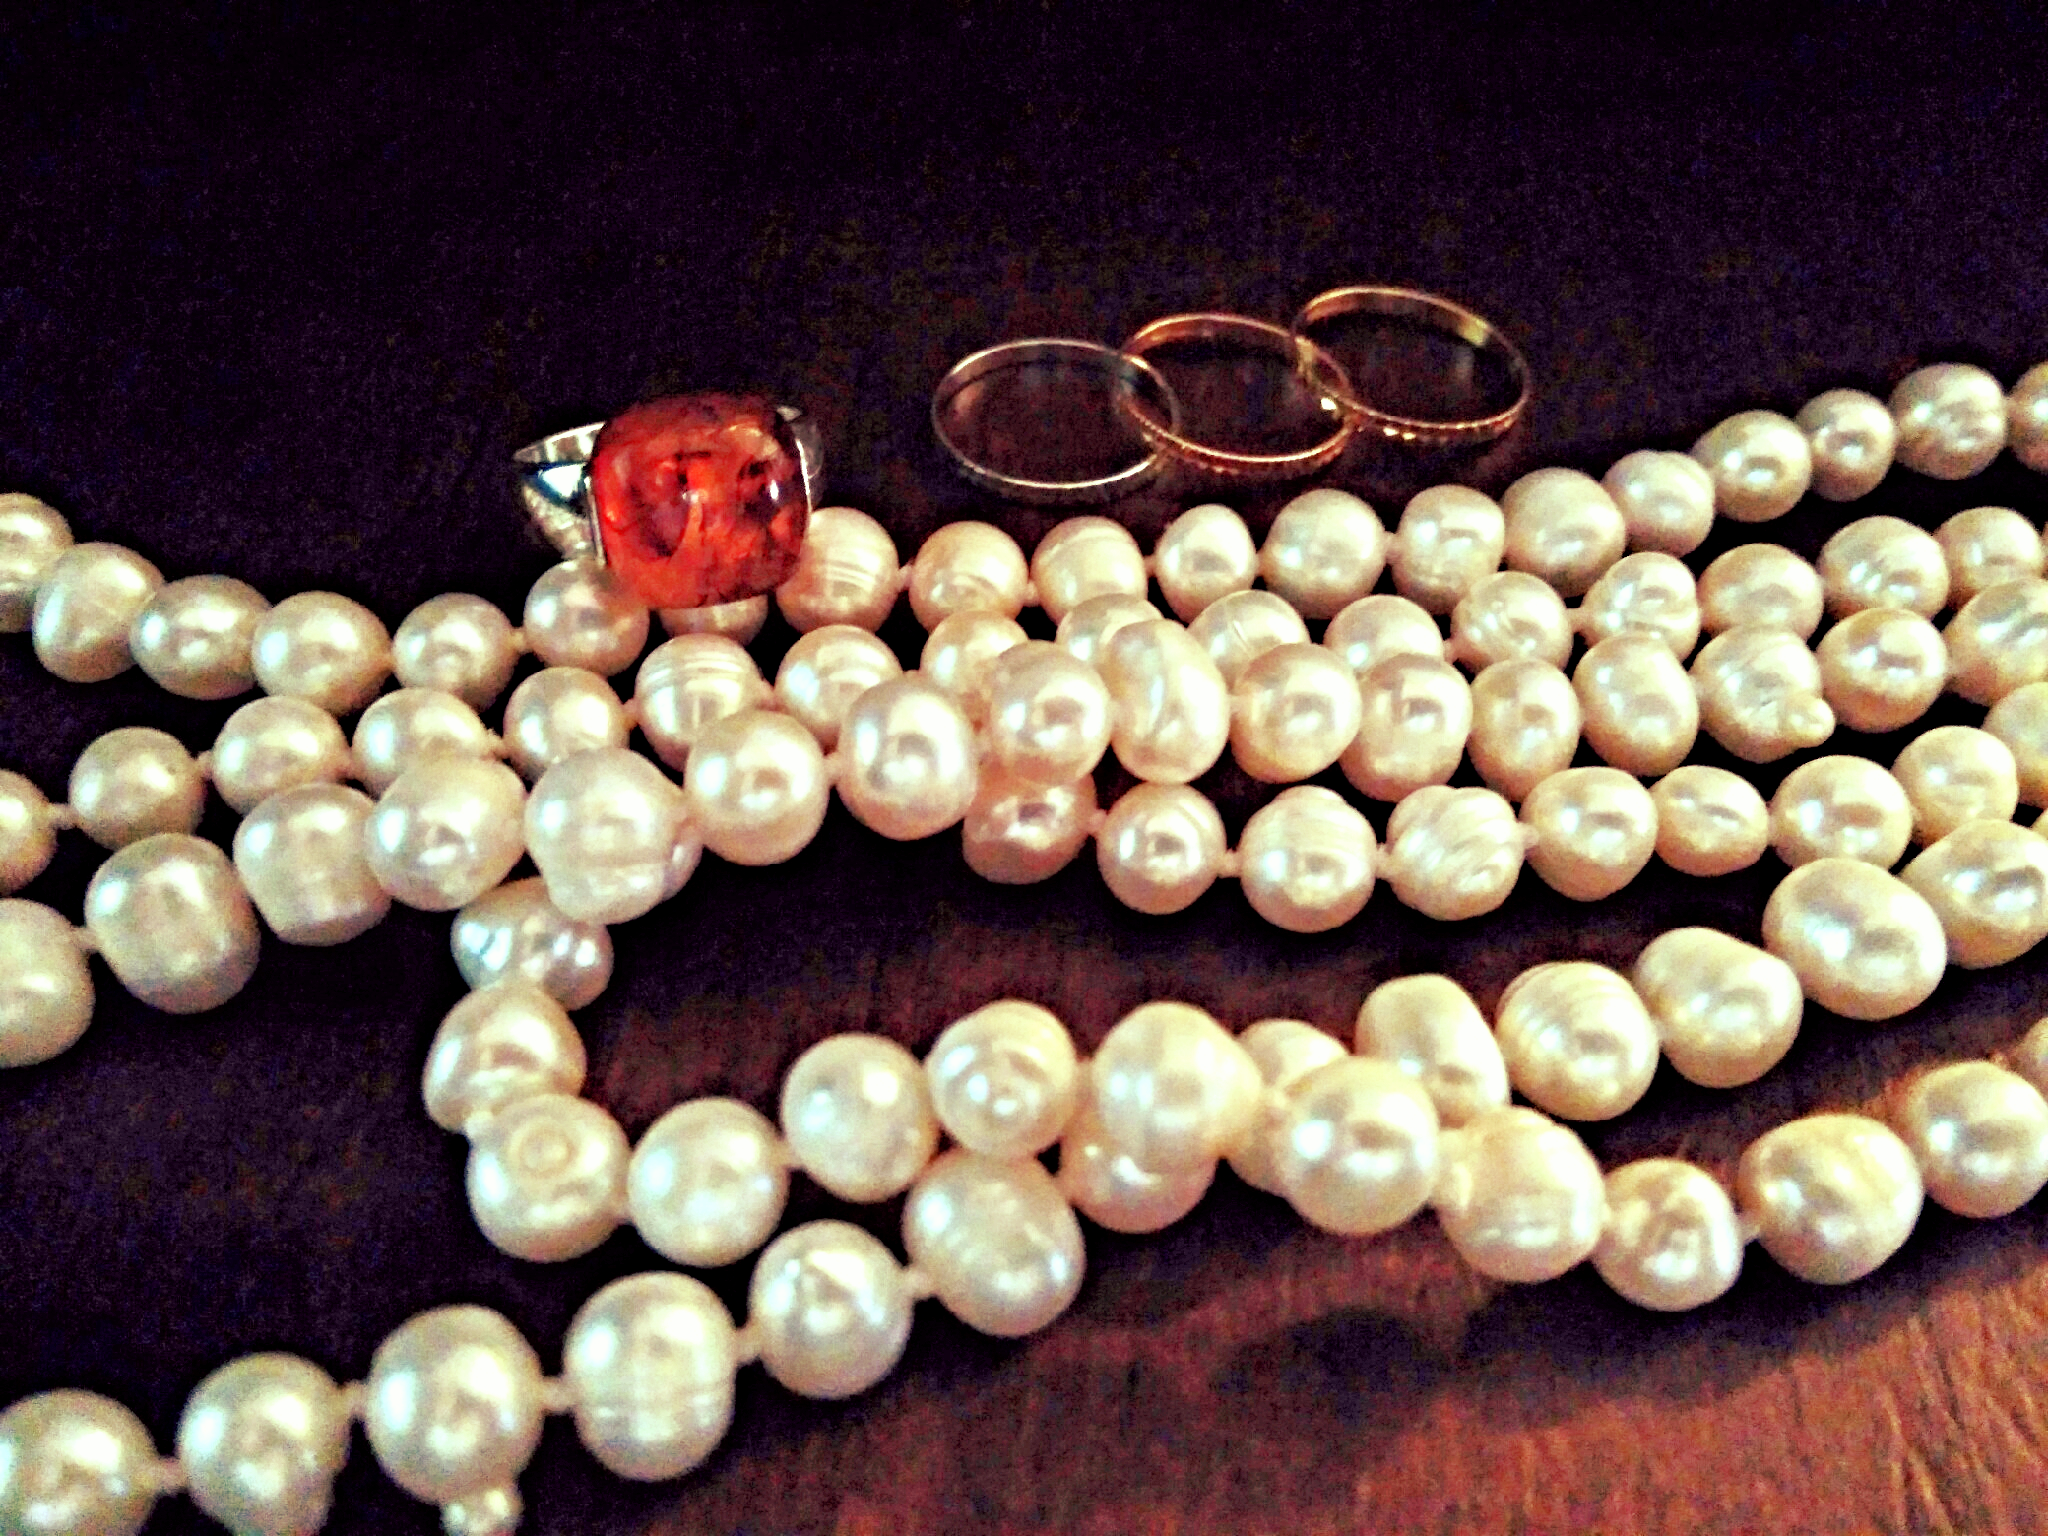 Sterling silver & Amber ring, 14k gold stack rings, and cultured pearl necklace